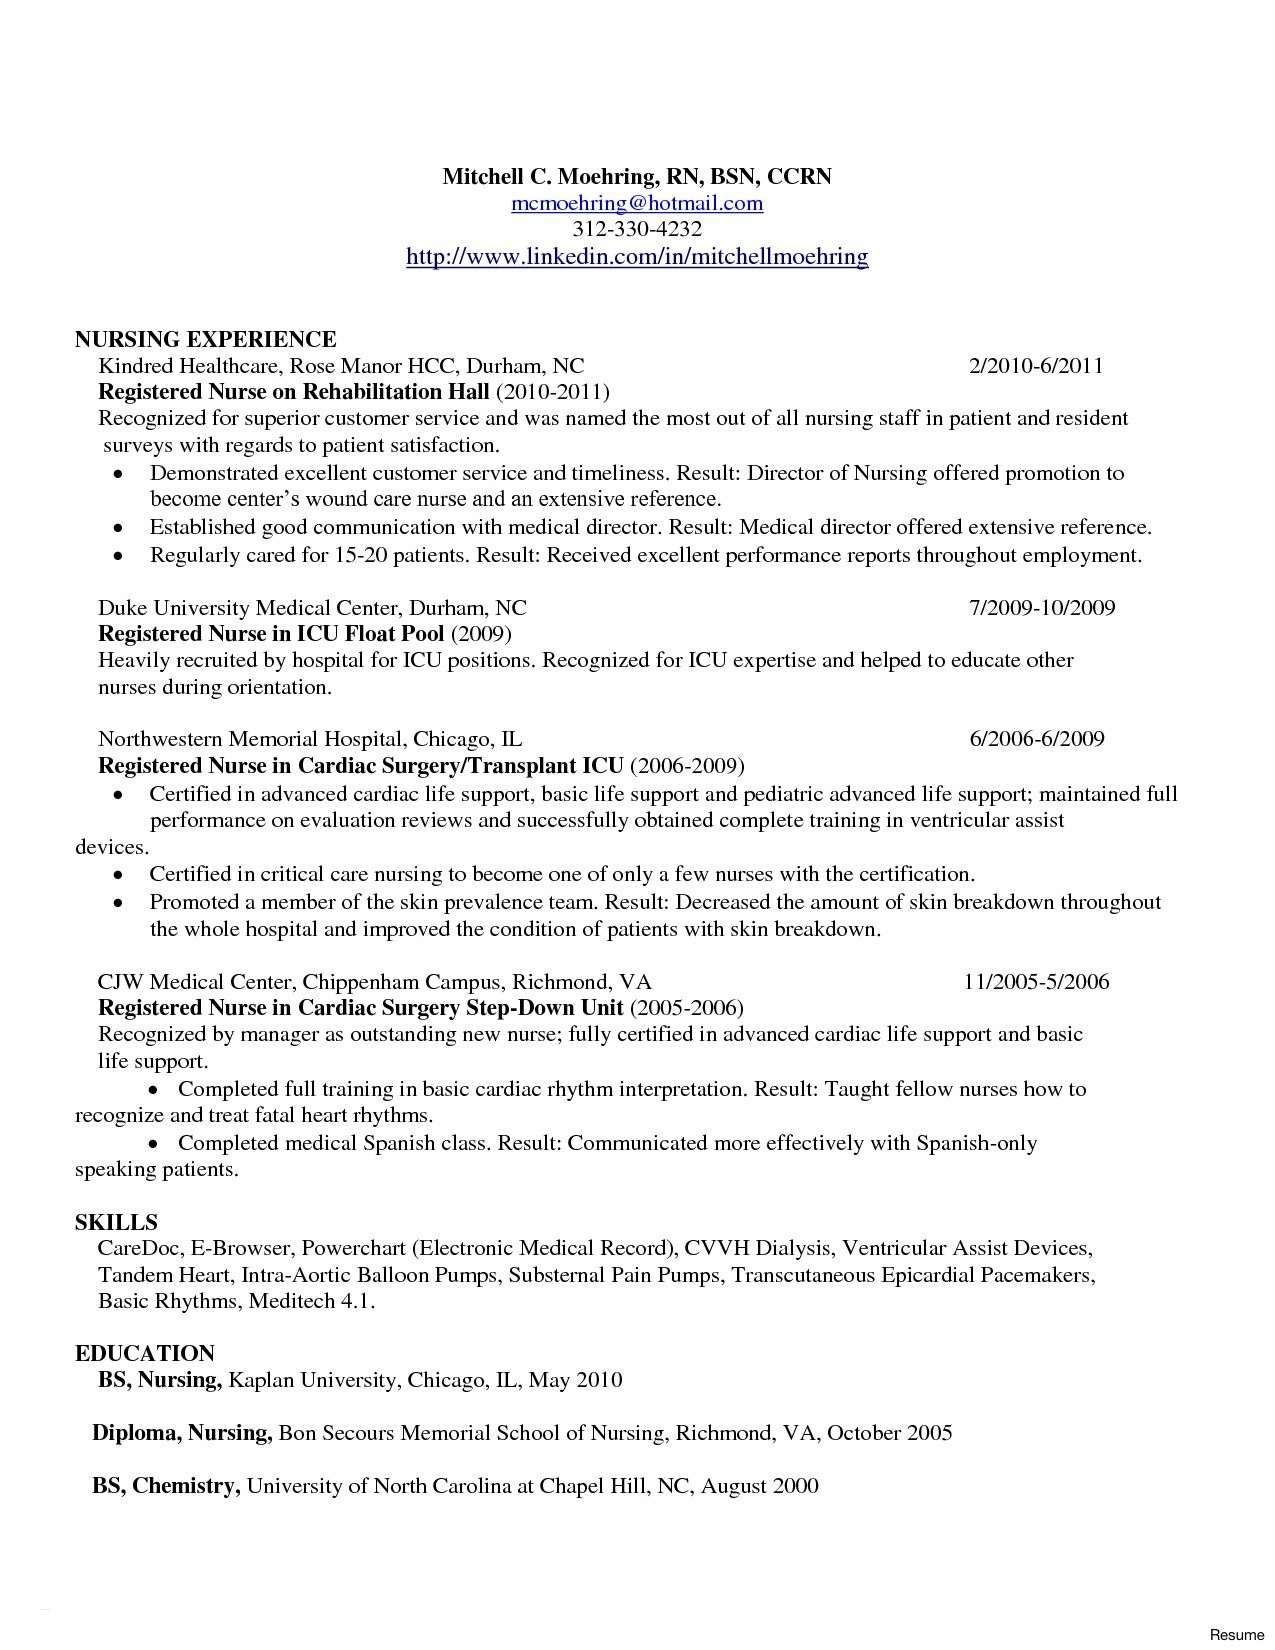 Nursing Resume Objective - Examples Resumes Objectives Beautiful Resume Objective for